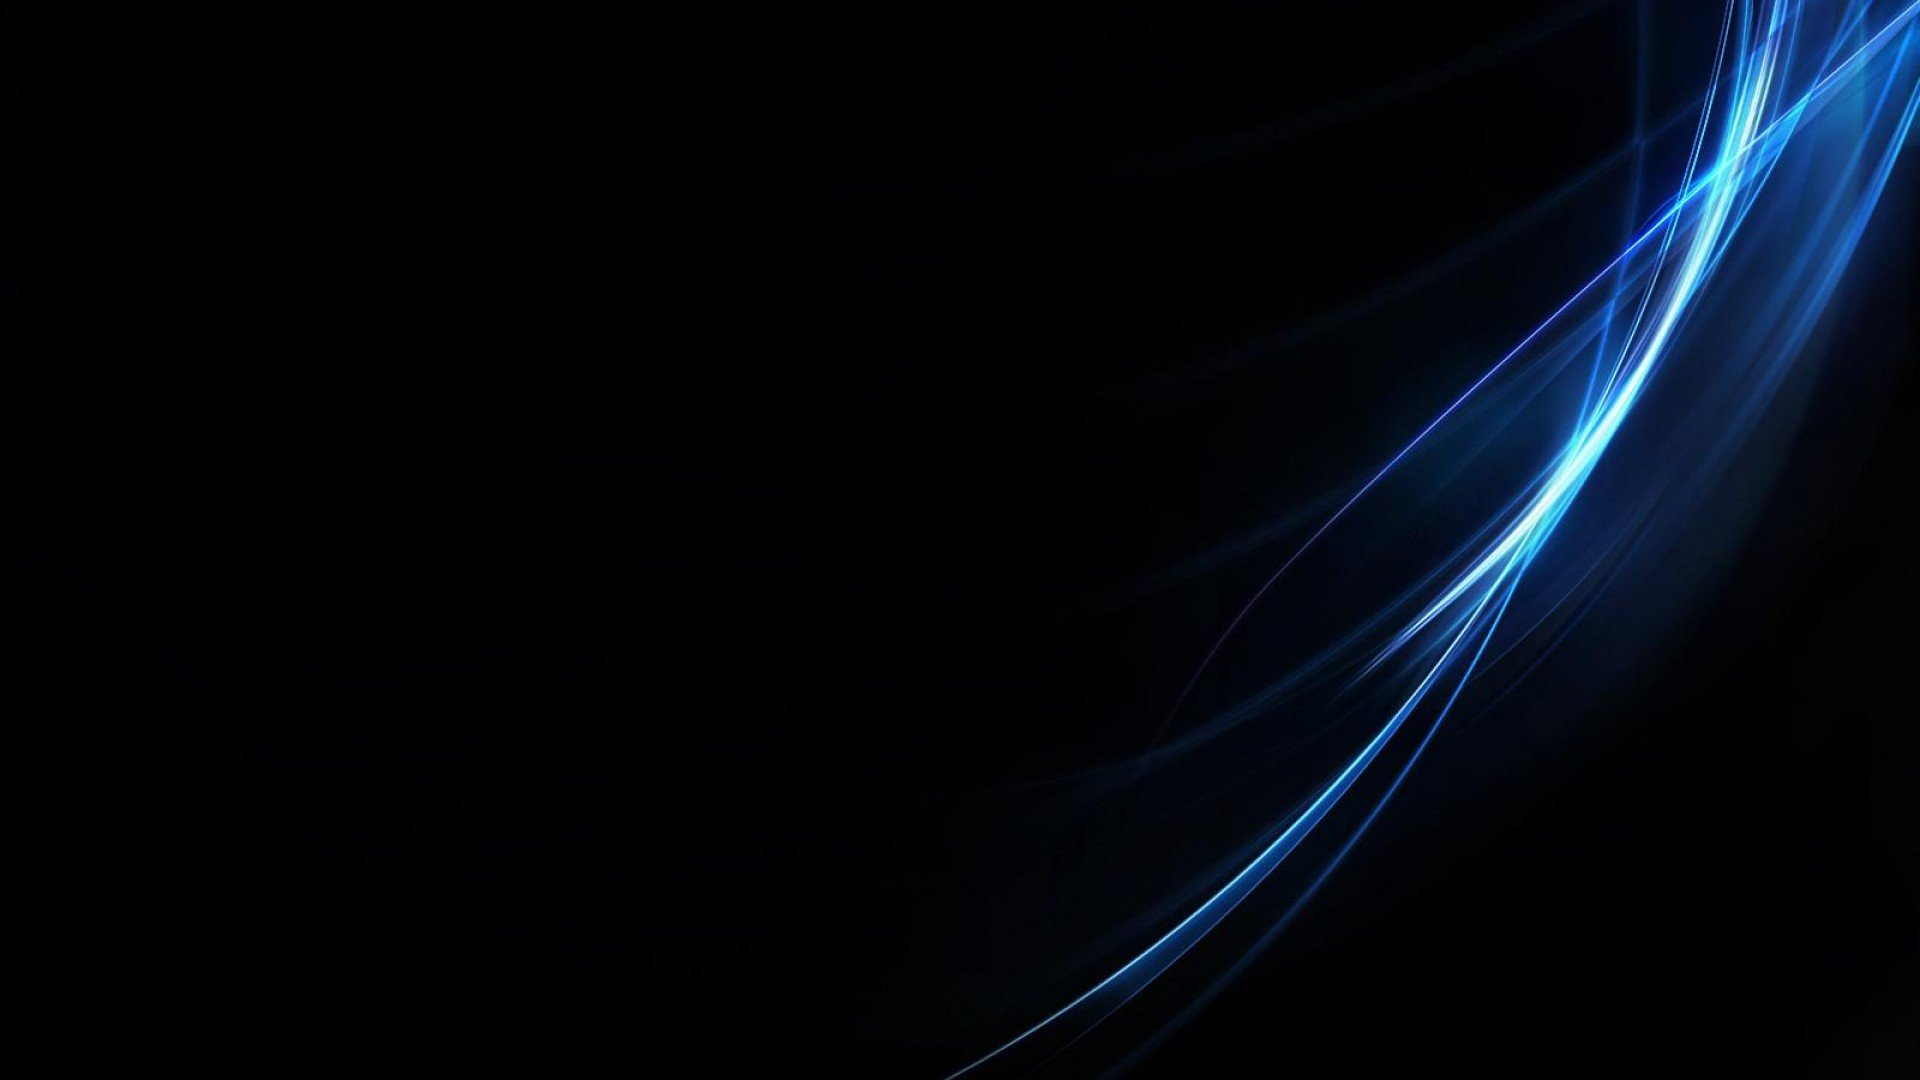 Blue abstract black wallpapers desktop 221826 Black Background and 1920x1080